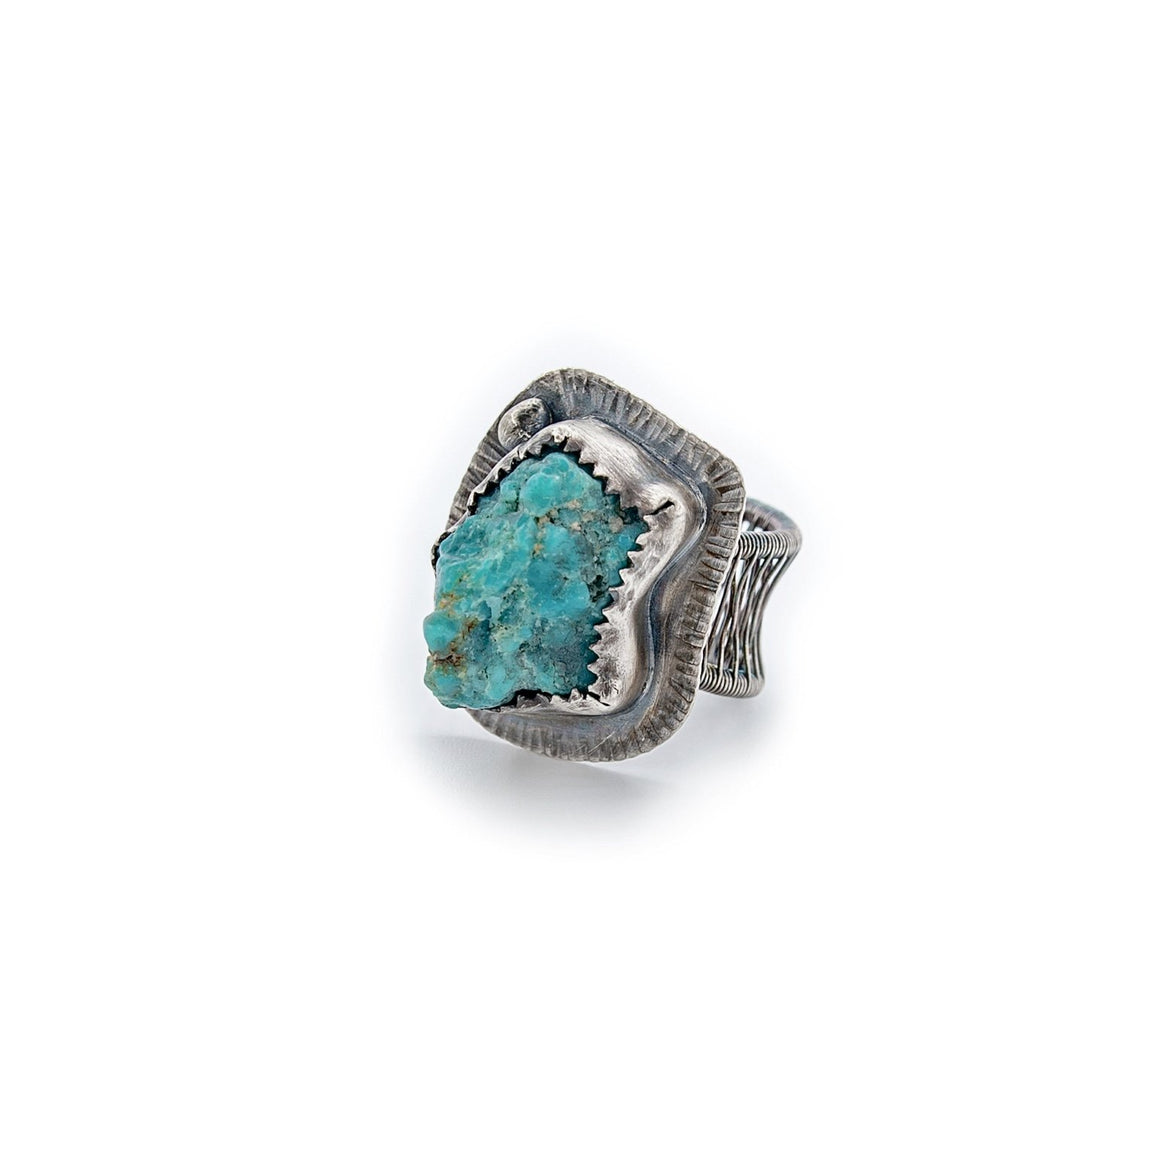 Turquoise Nugget Ring with Woven Band by Original Sin Jewelry